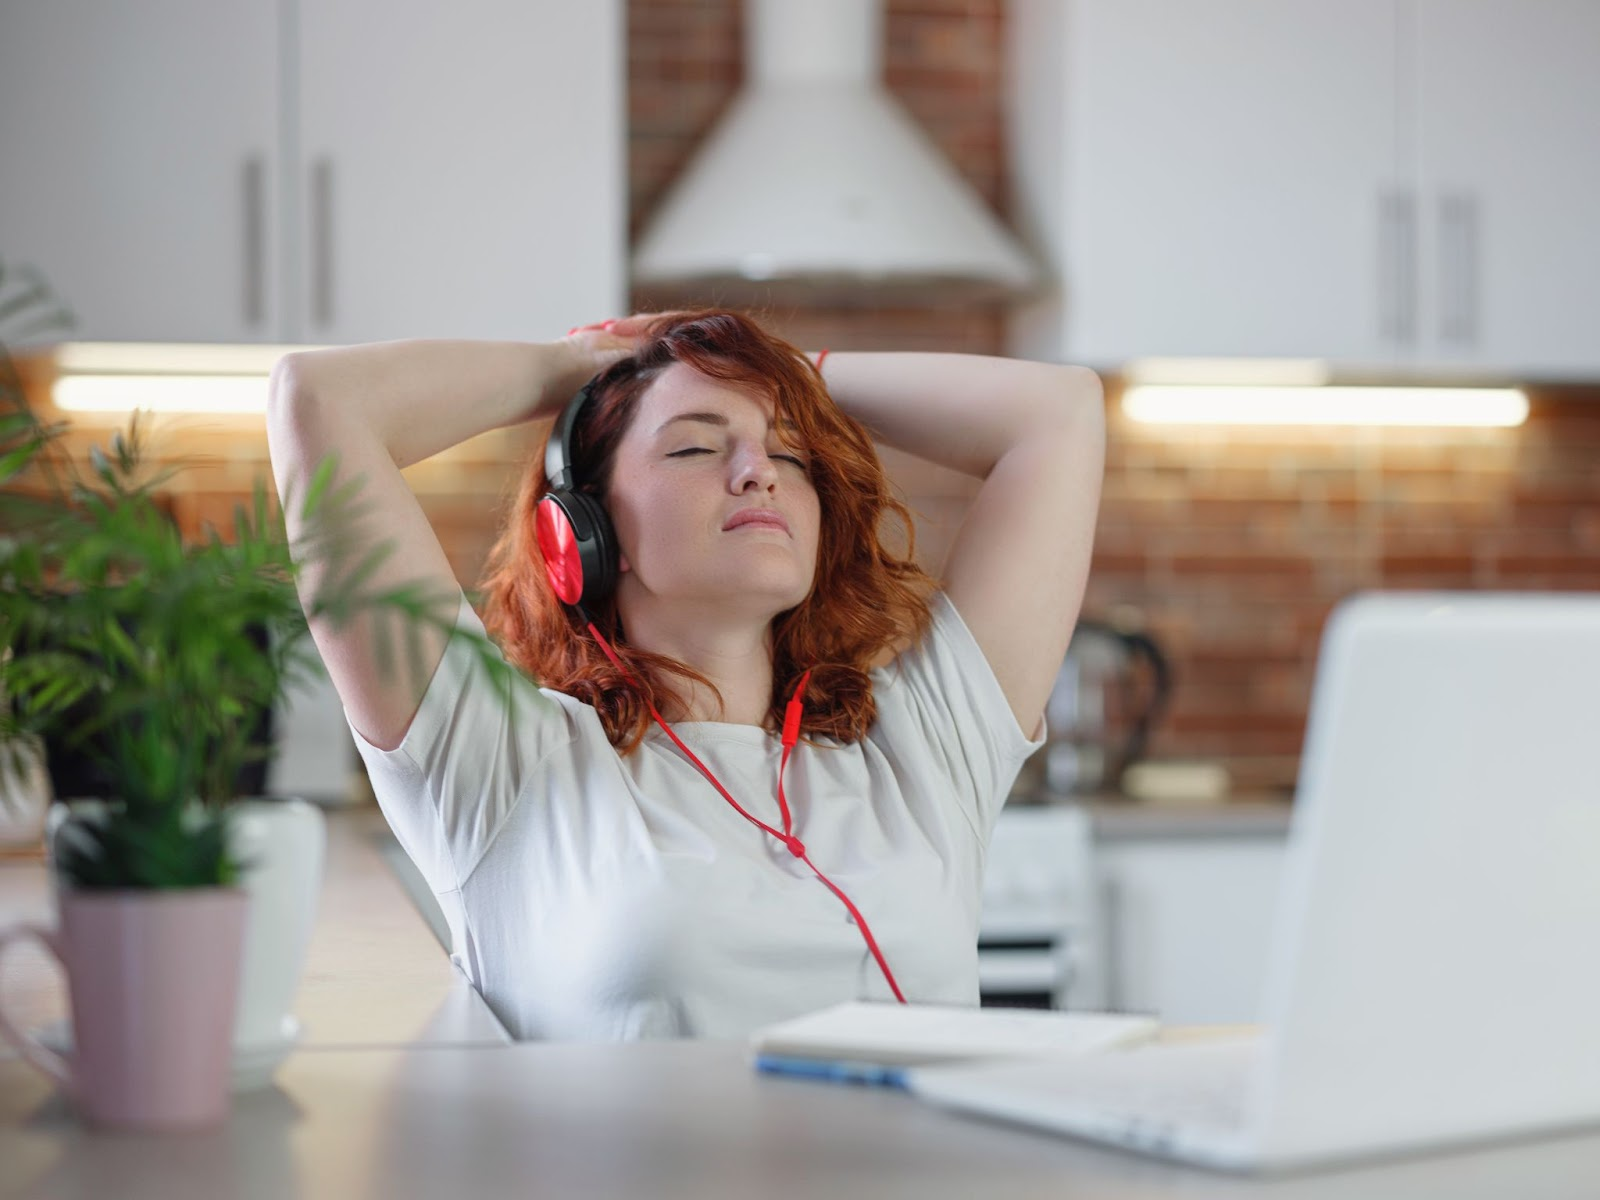 Uses of Relaxing Music